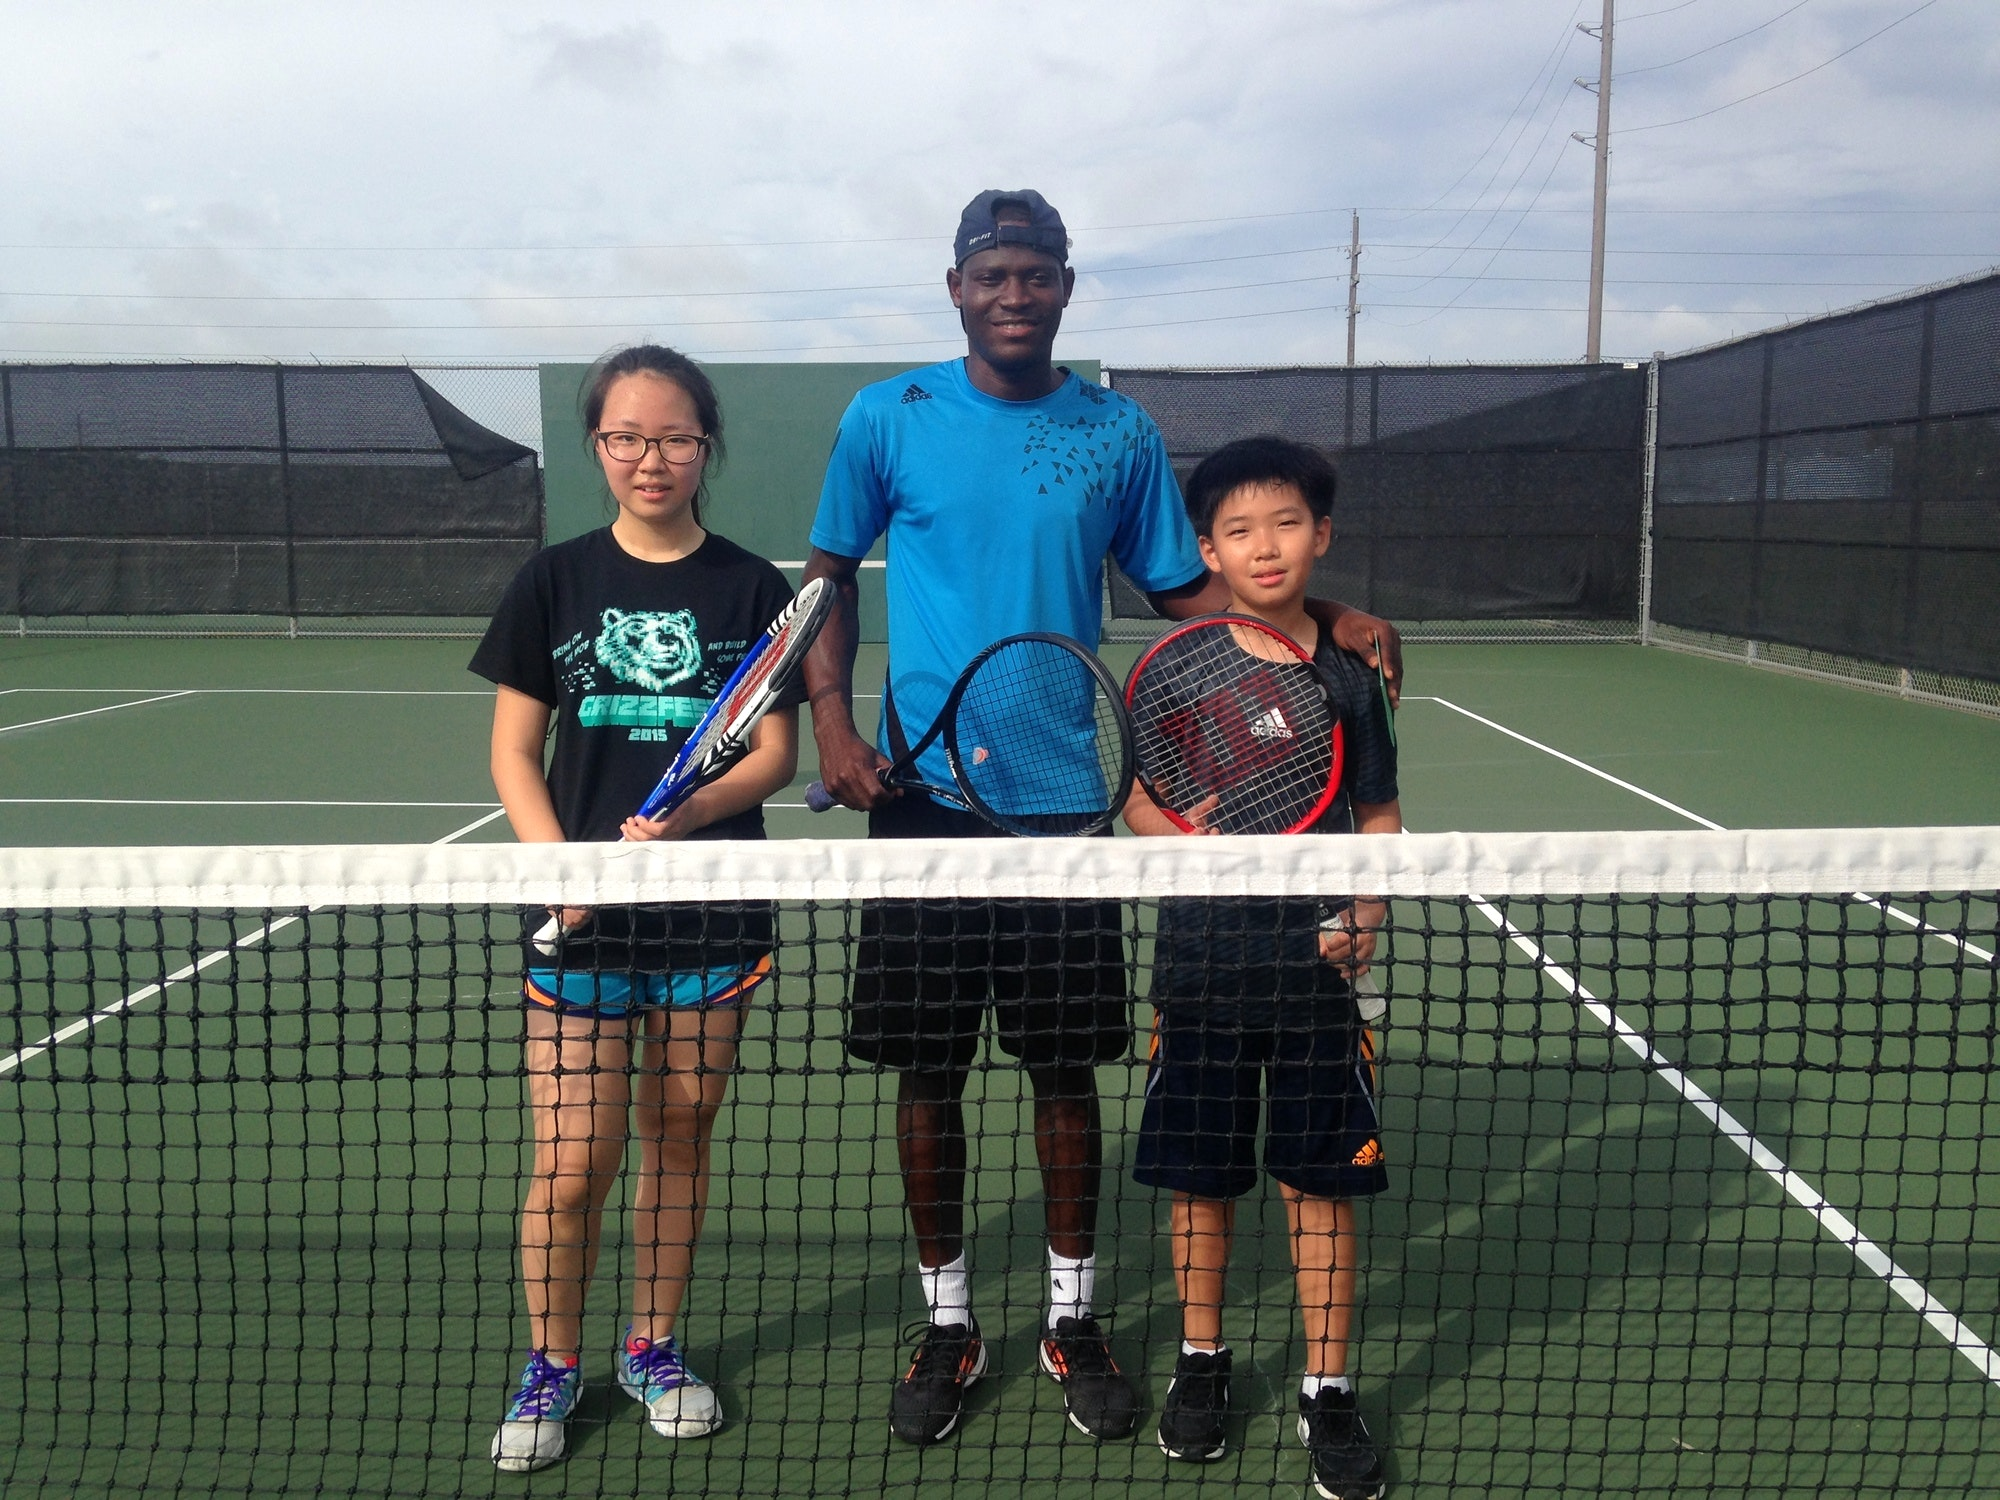 Julius A. teaches tennis lessons in Katy, TX